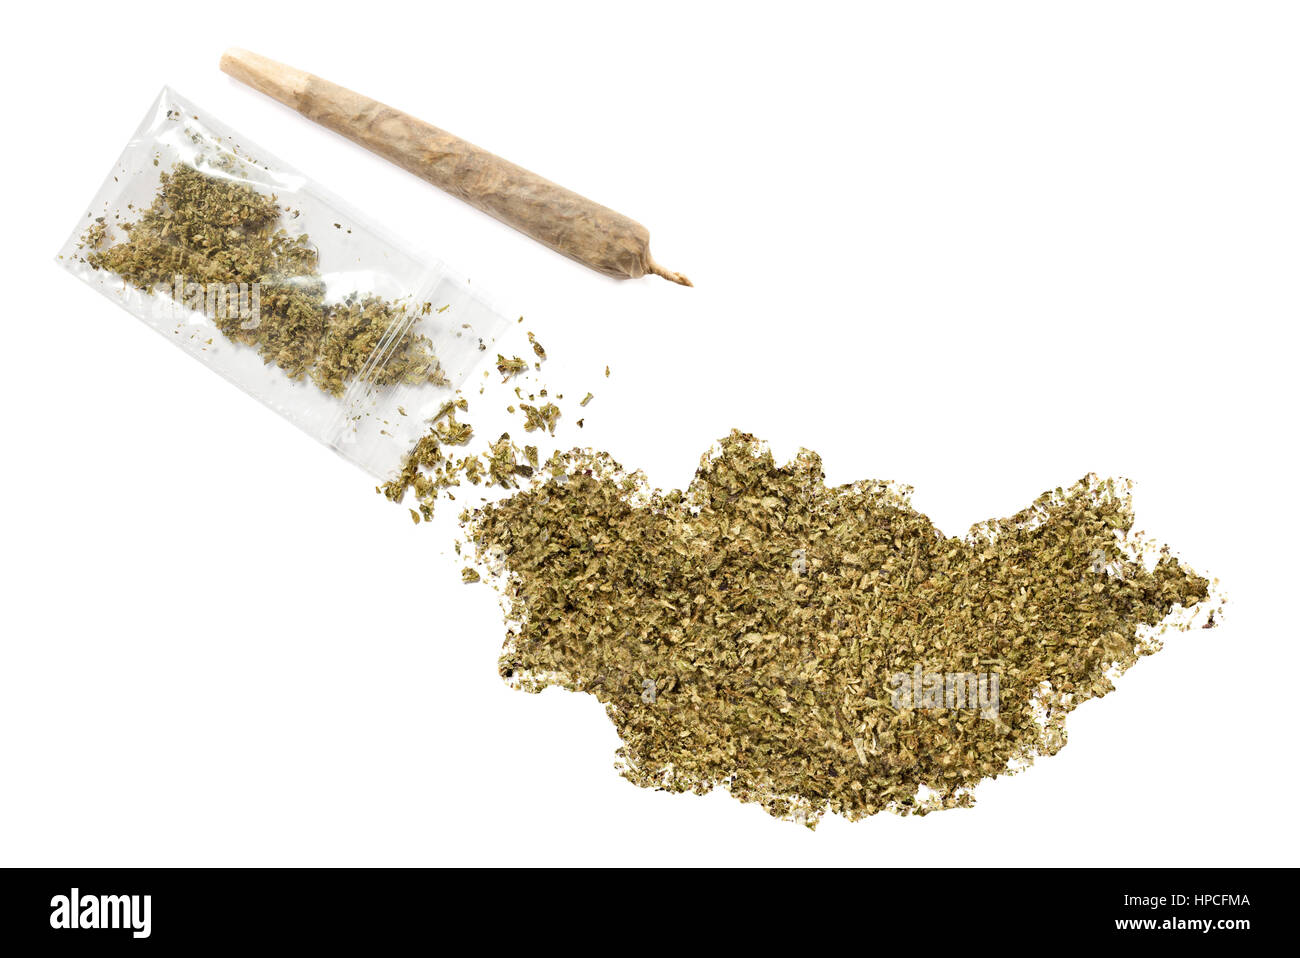 Grinded weed shaped as Mongolia and a joint.(series) - Stock Image